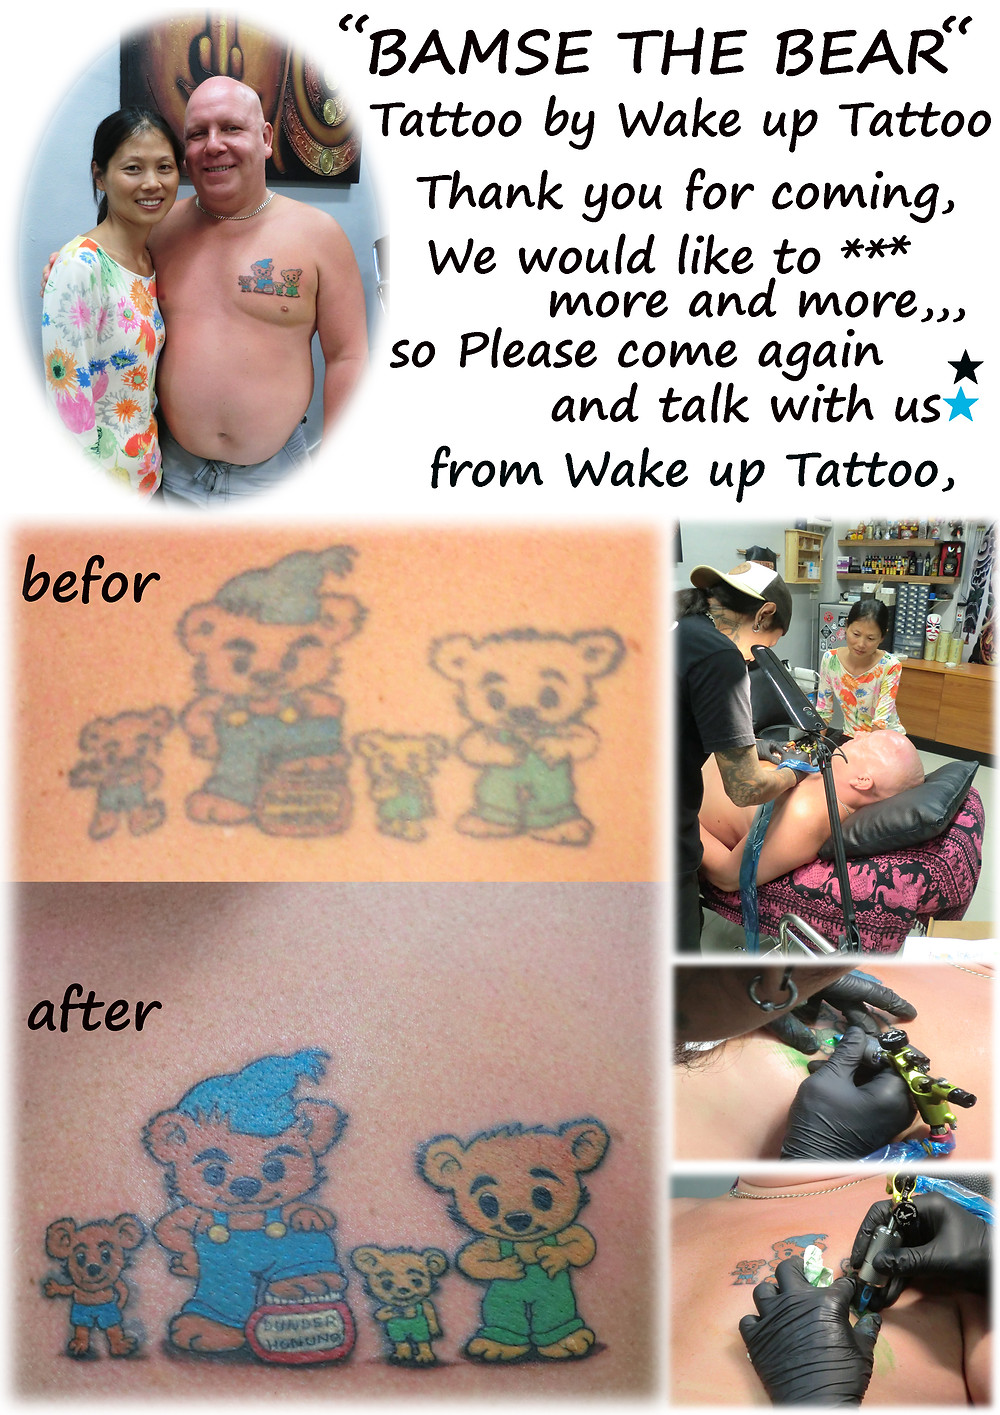 BAMSE THE BEAR Tattoo by Wake up tattoo Phuket